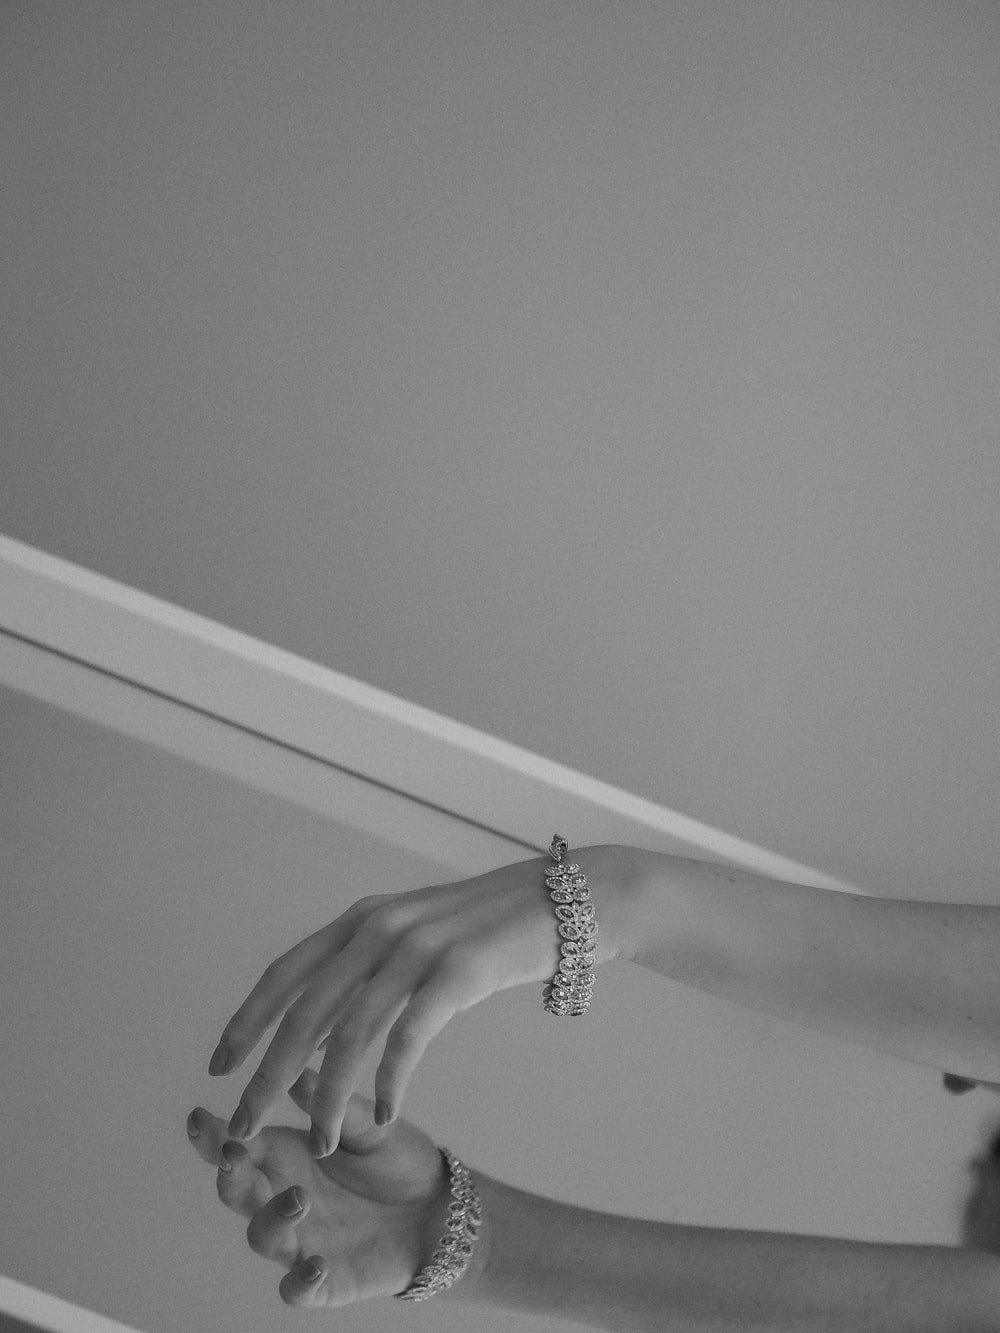 grayscale photo of person wearing silver ring